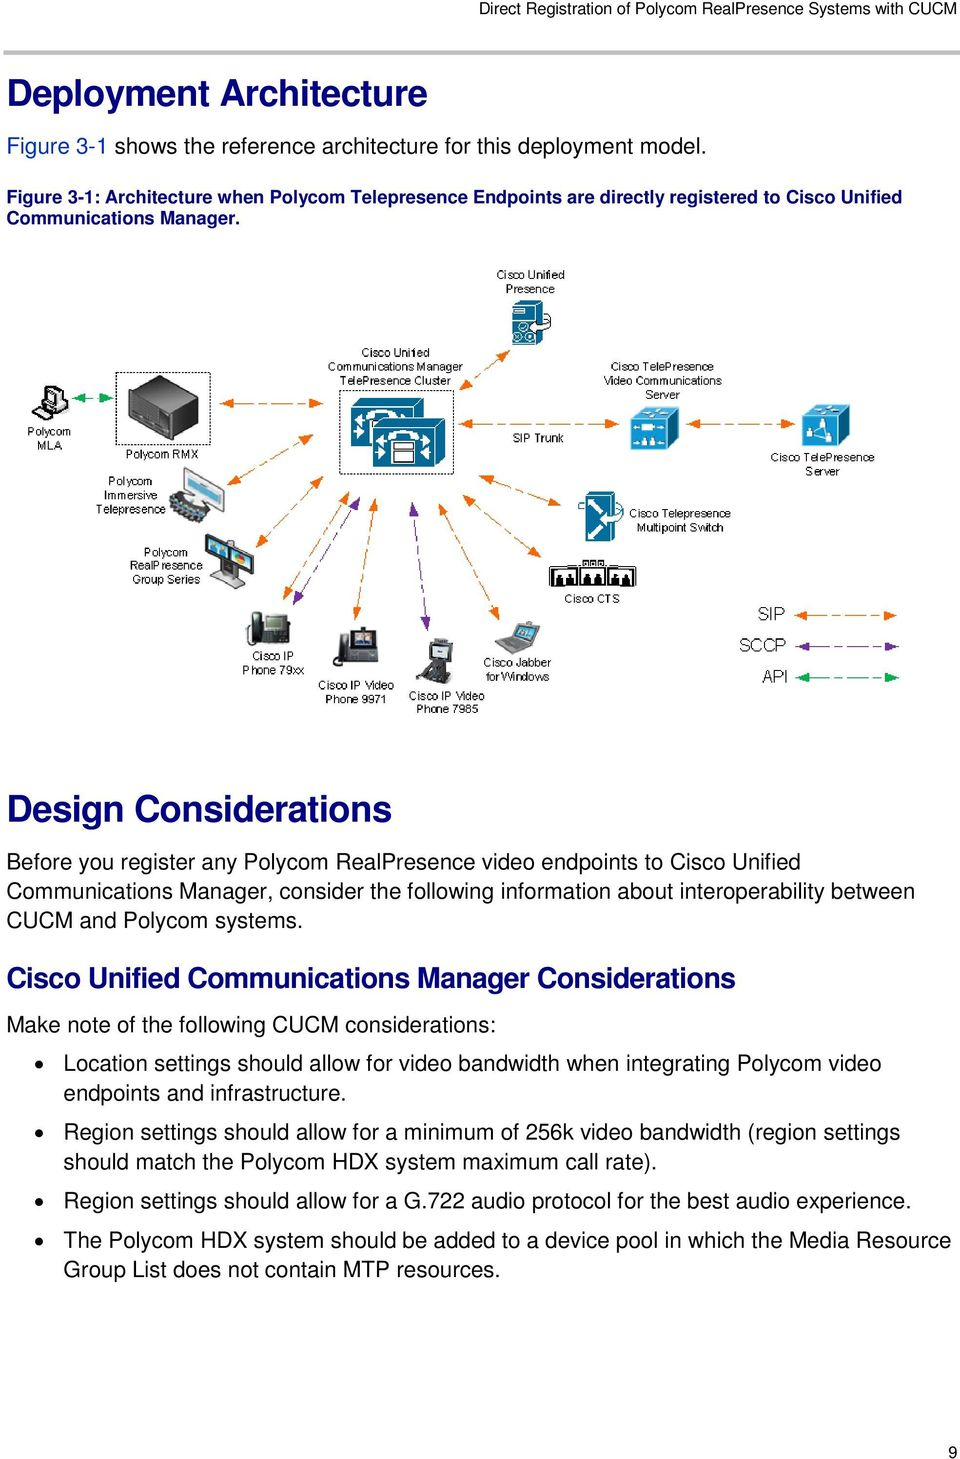 Design Considerations Before you register any Polycom RealPresence video endpoints to Cisco Unified Communications Manager, consider the following information about interoperability between CUCM and